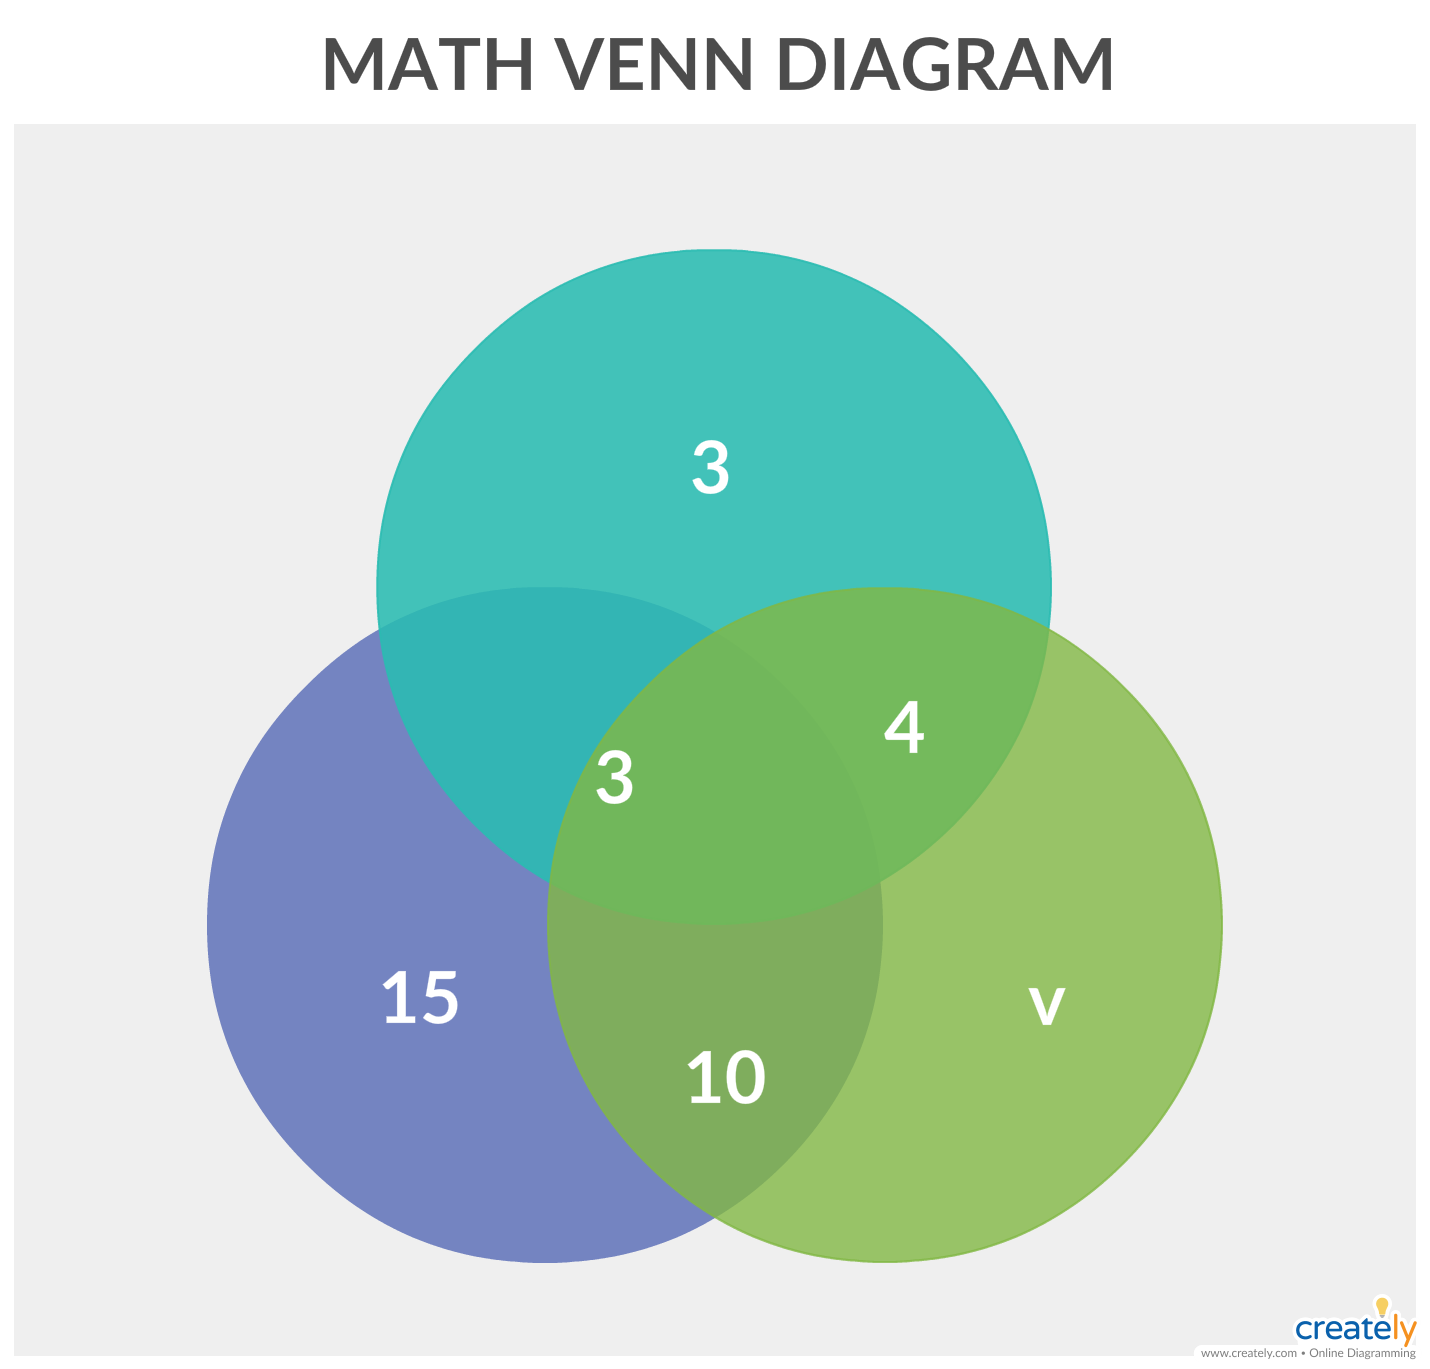 Creately Diagrams Can Be Exported And Added To Word PPT Powerpoint Excel Visio Or Any Other Document Venn VennDiagrams